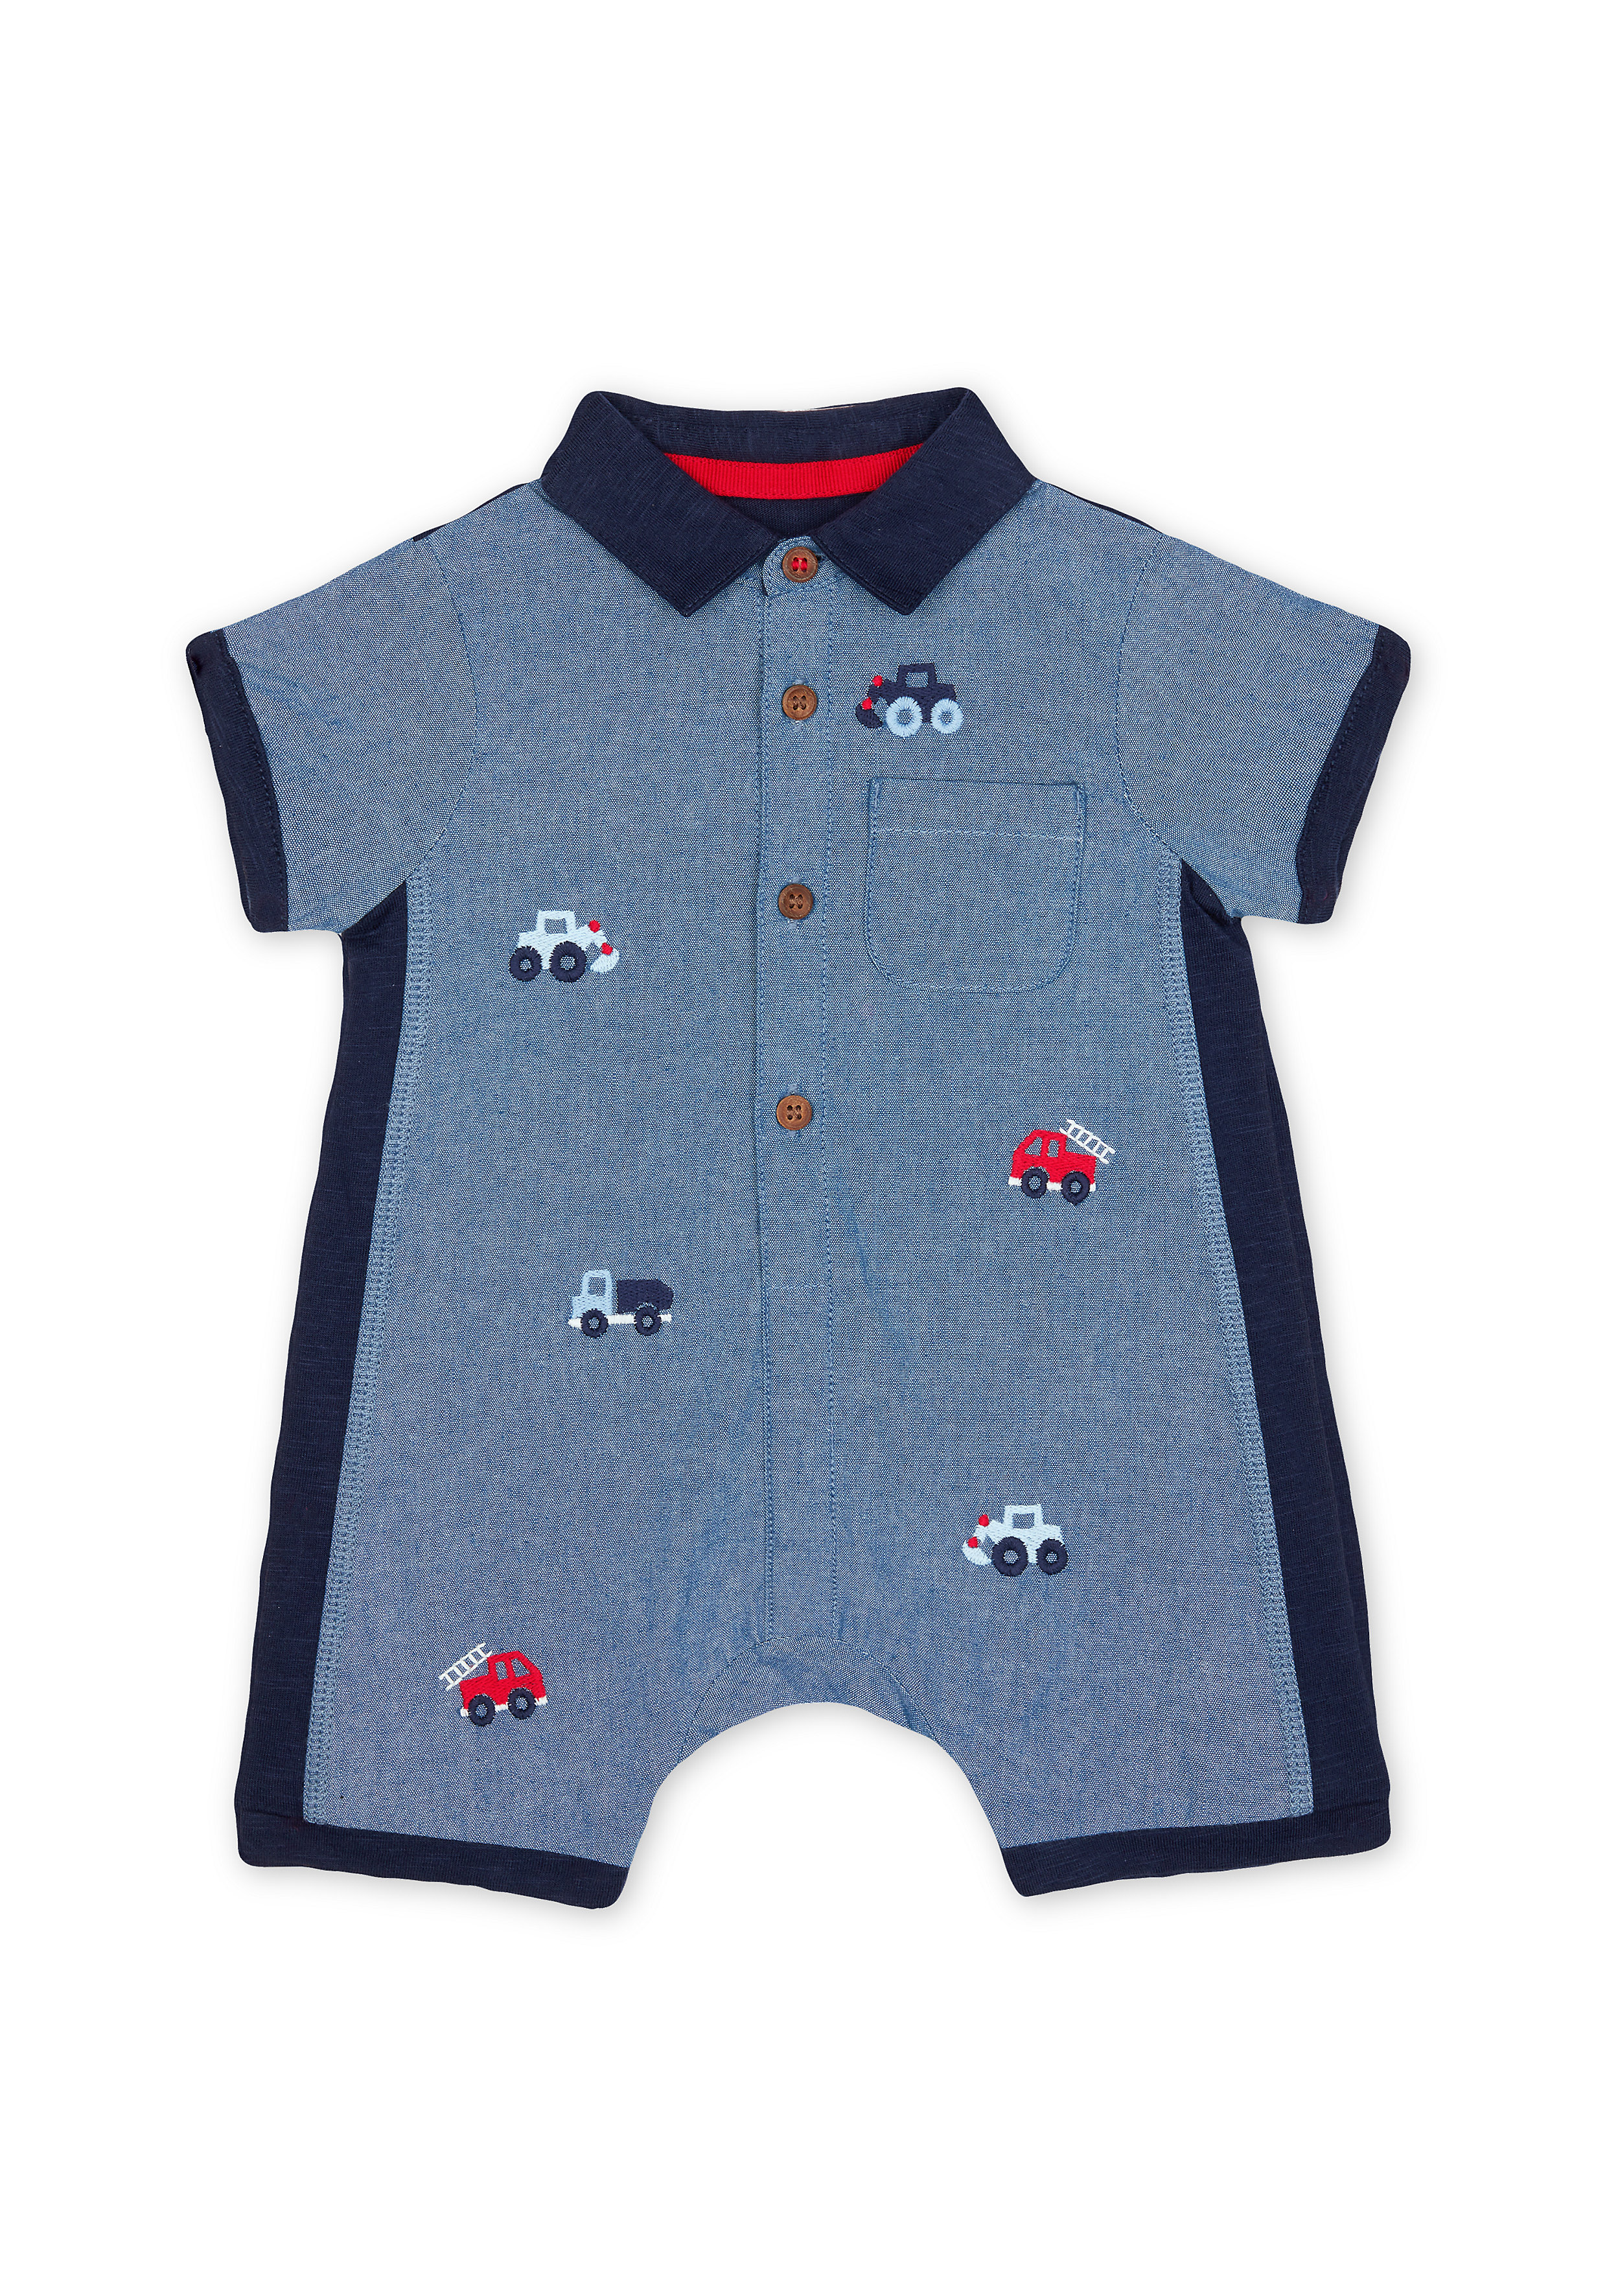 Mothercare | Boys Half Sleeves Romper Vehicle Embroidery - Navy